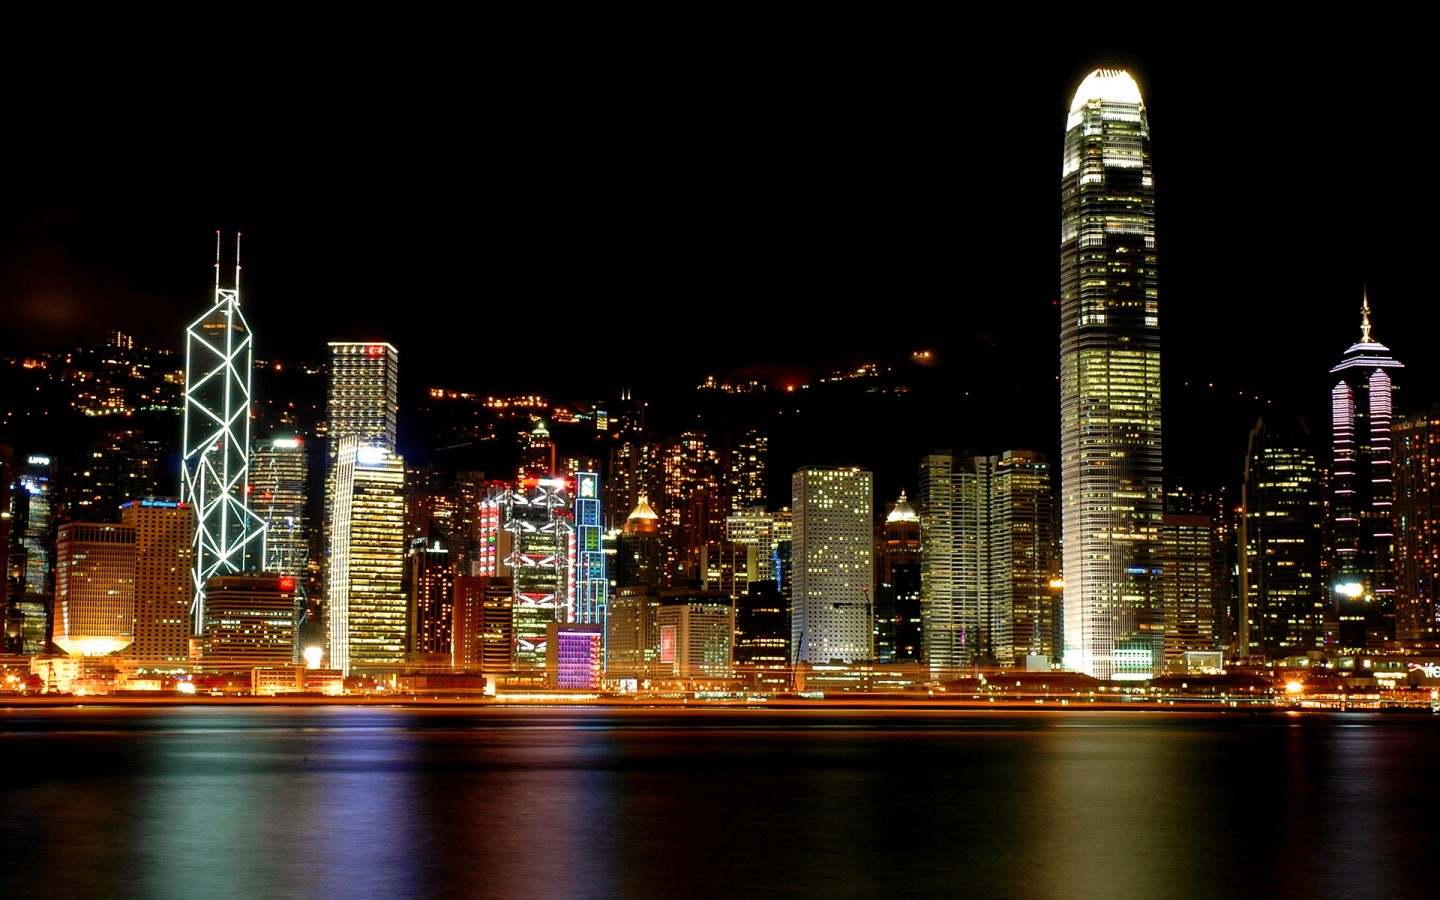 Love Wallpaper Iphone X Hong Kong Victoria Harbour Wallpapers Hd Wallpapers Id